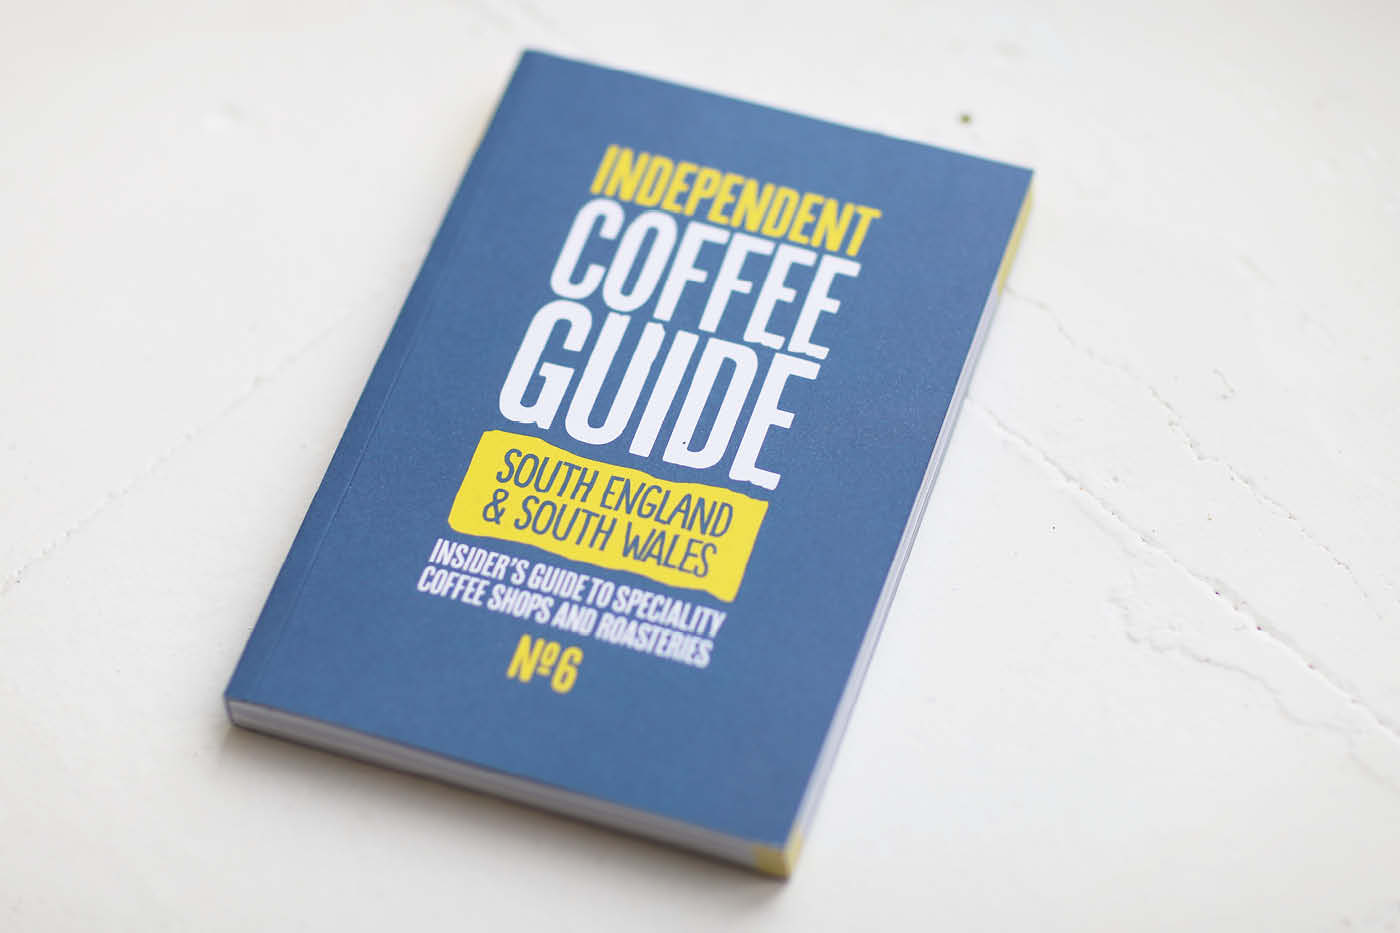 Independent Coffee Guide, foodie coffee shops